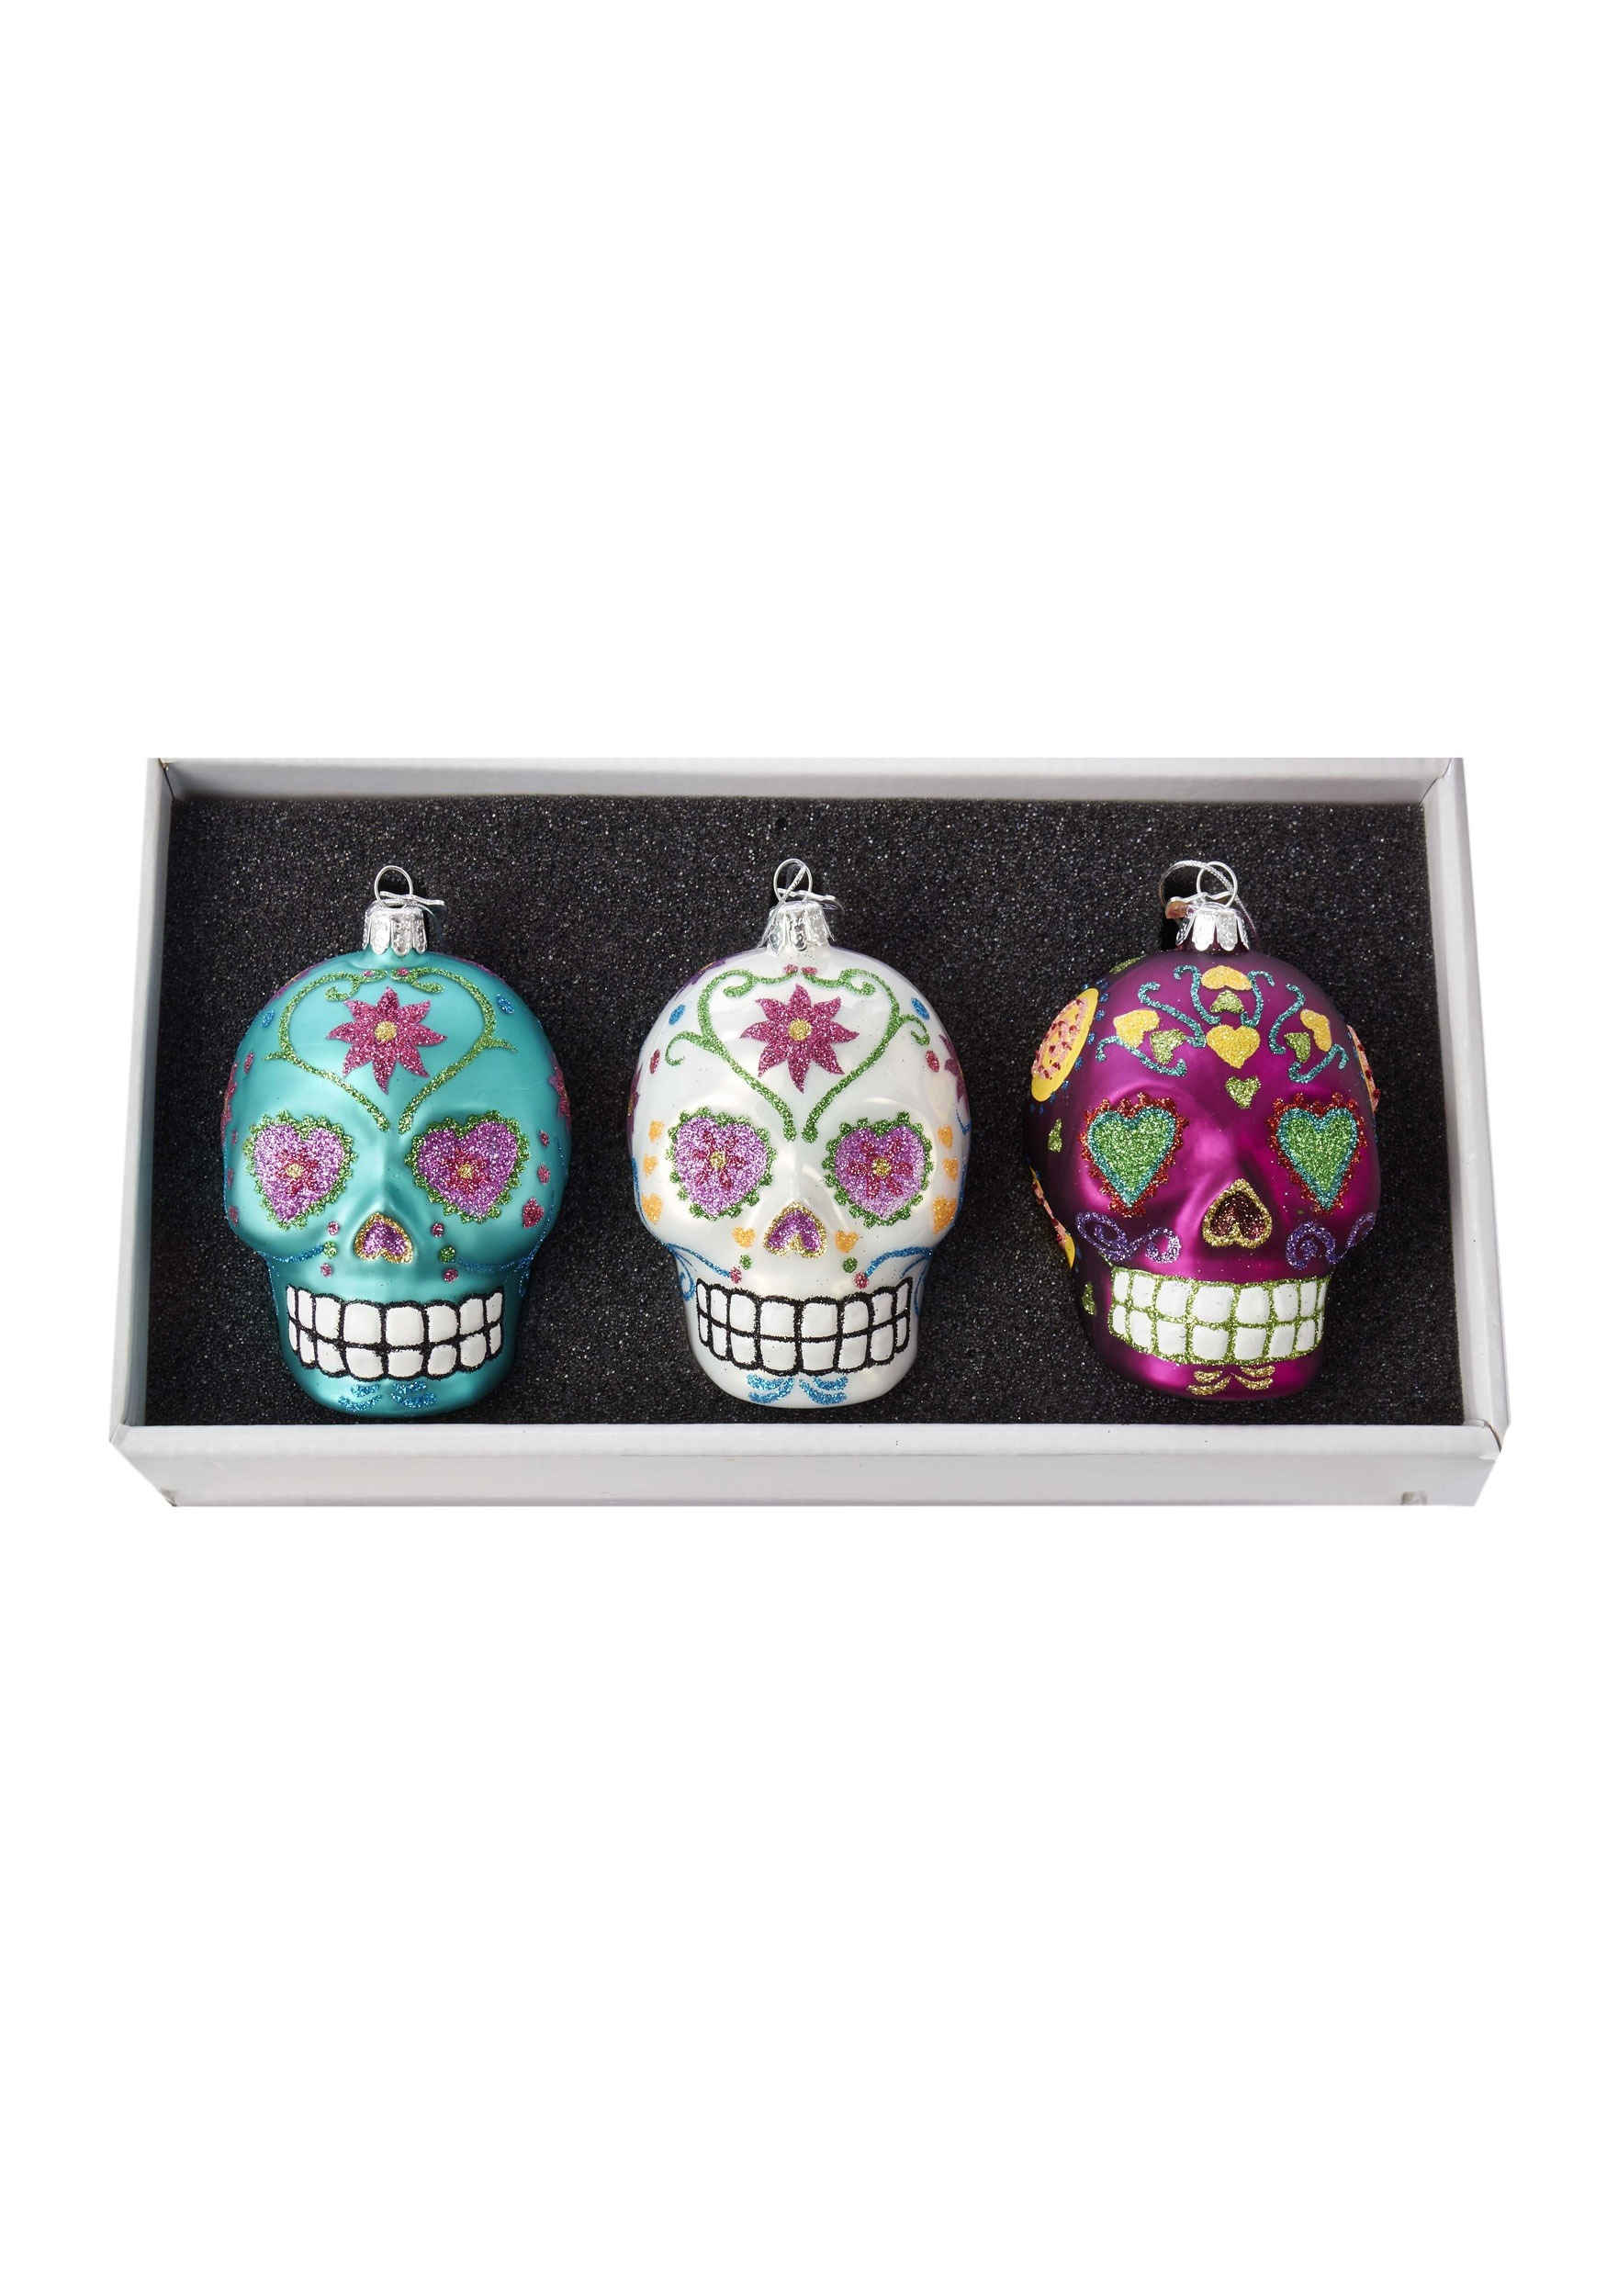 Glass Sugar Skull Ornament 3pc Box Set